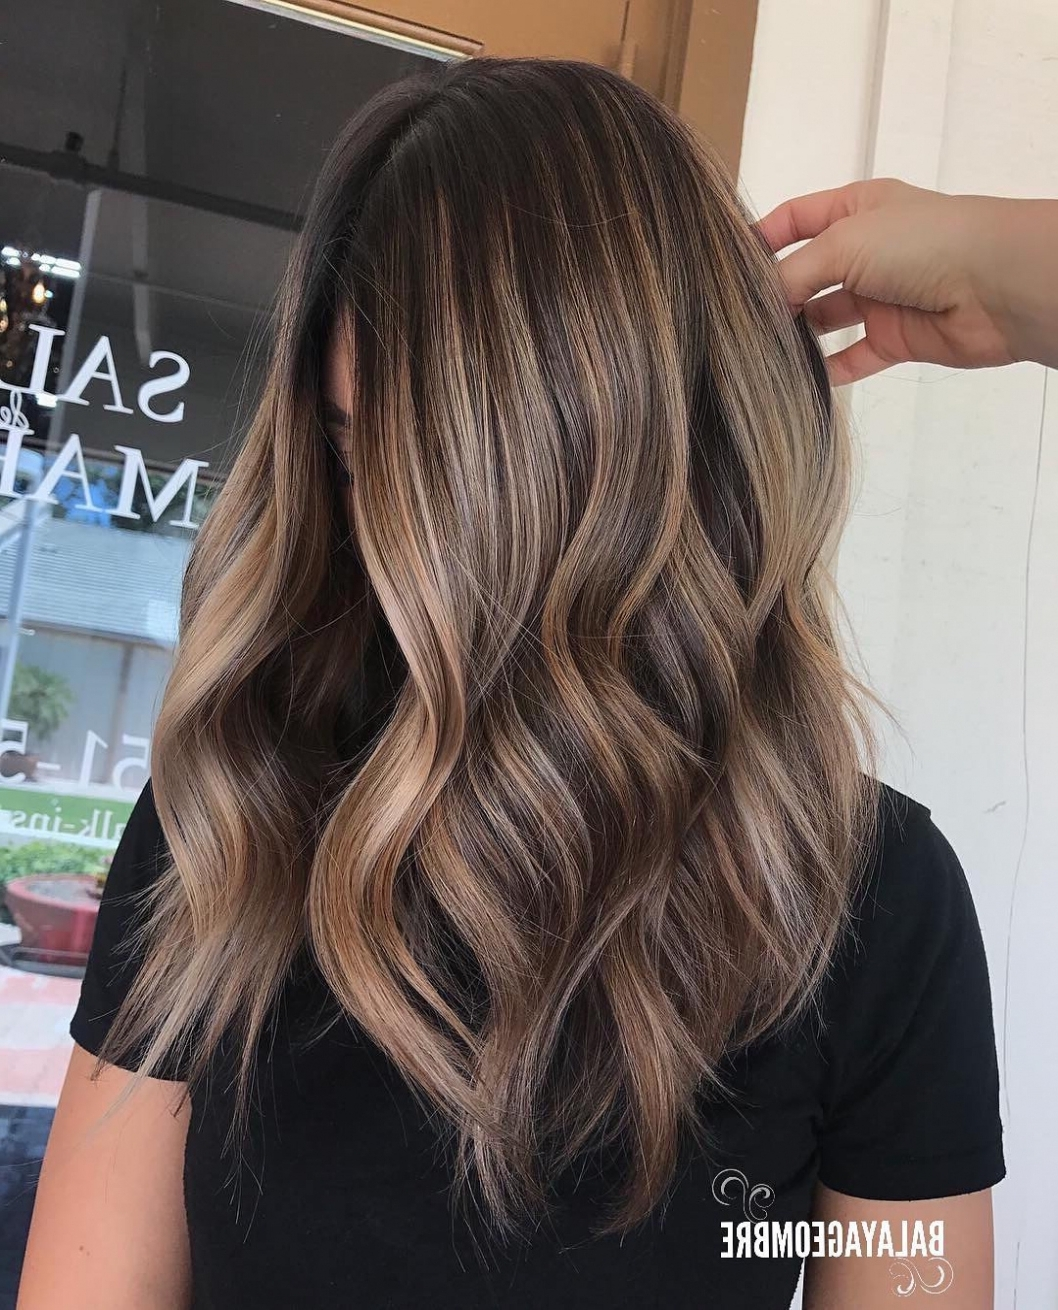 10 Best Medium Layered Hairstyles 2018 Brown & Ash Blonde Fashion Intended For Most Popular Brown Blonde Layers Hairstyles (View 2 of 20)